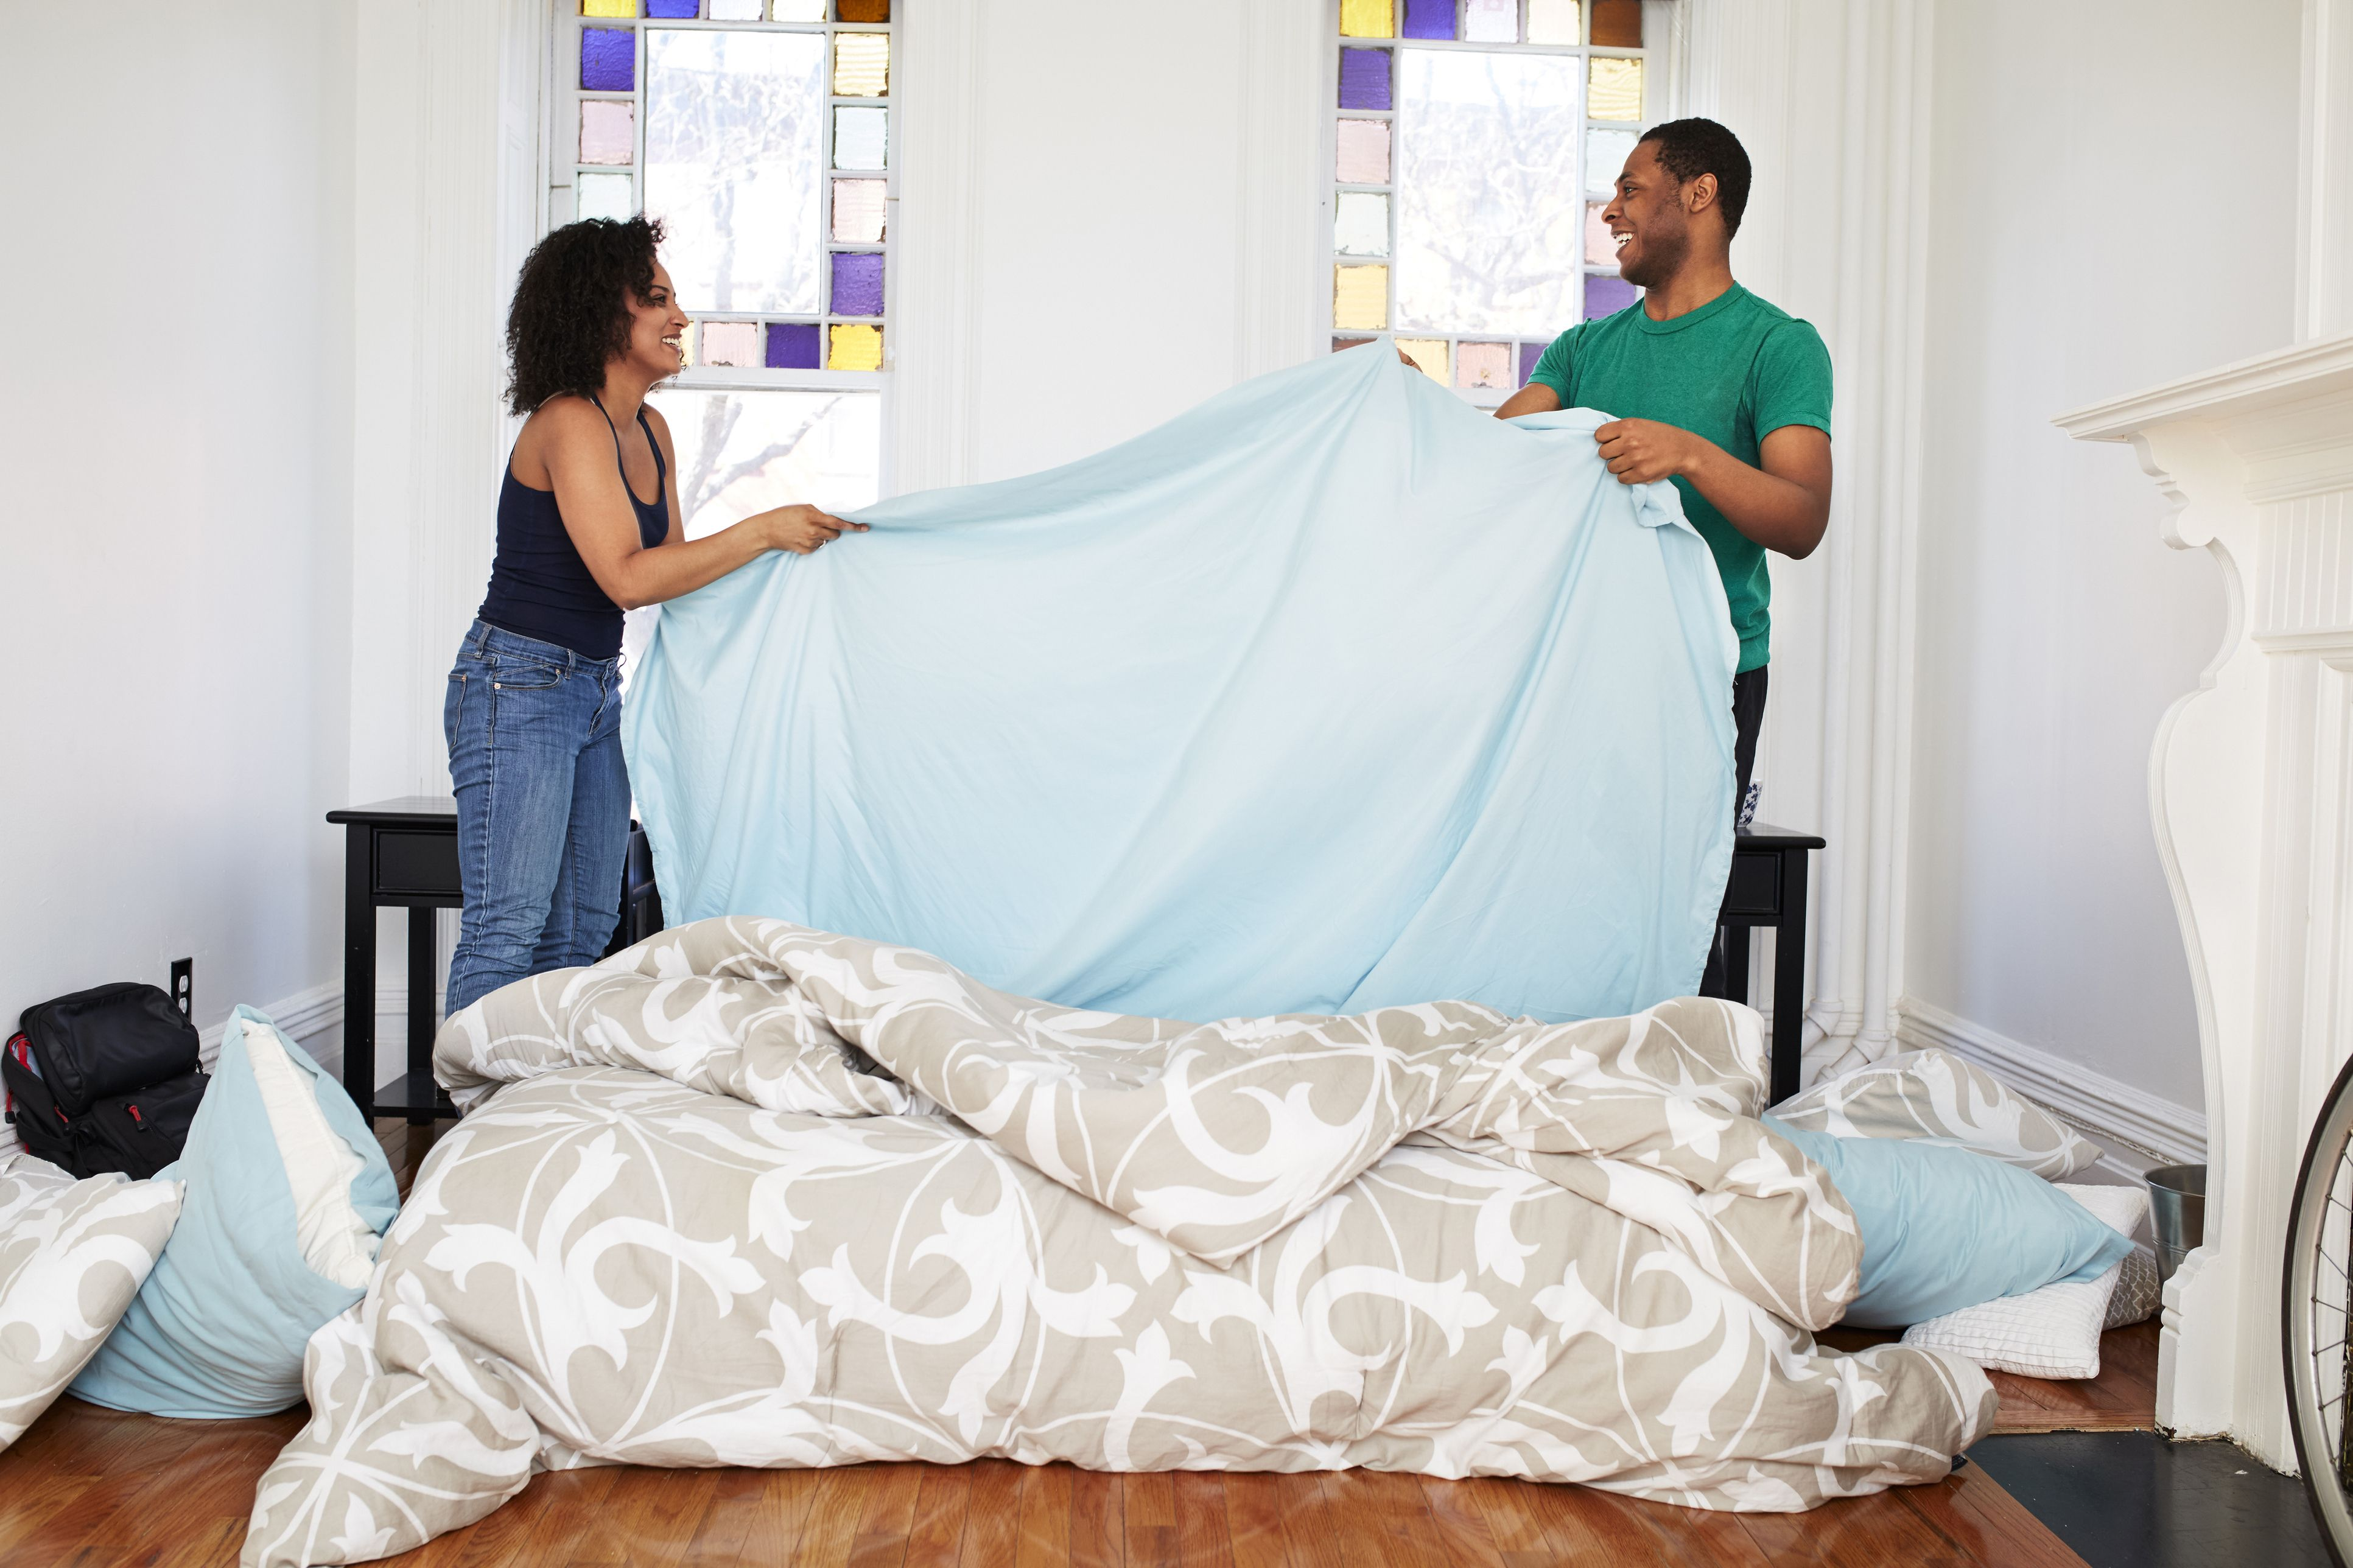 High Quality Couple Changing Sheets On Bed